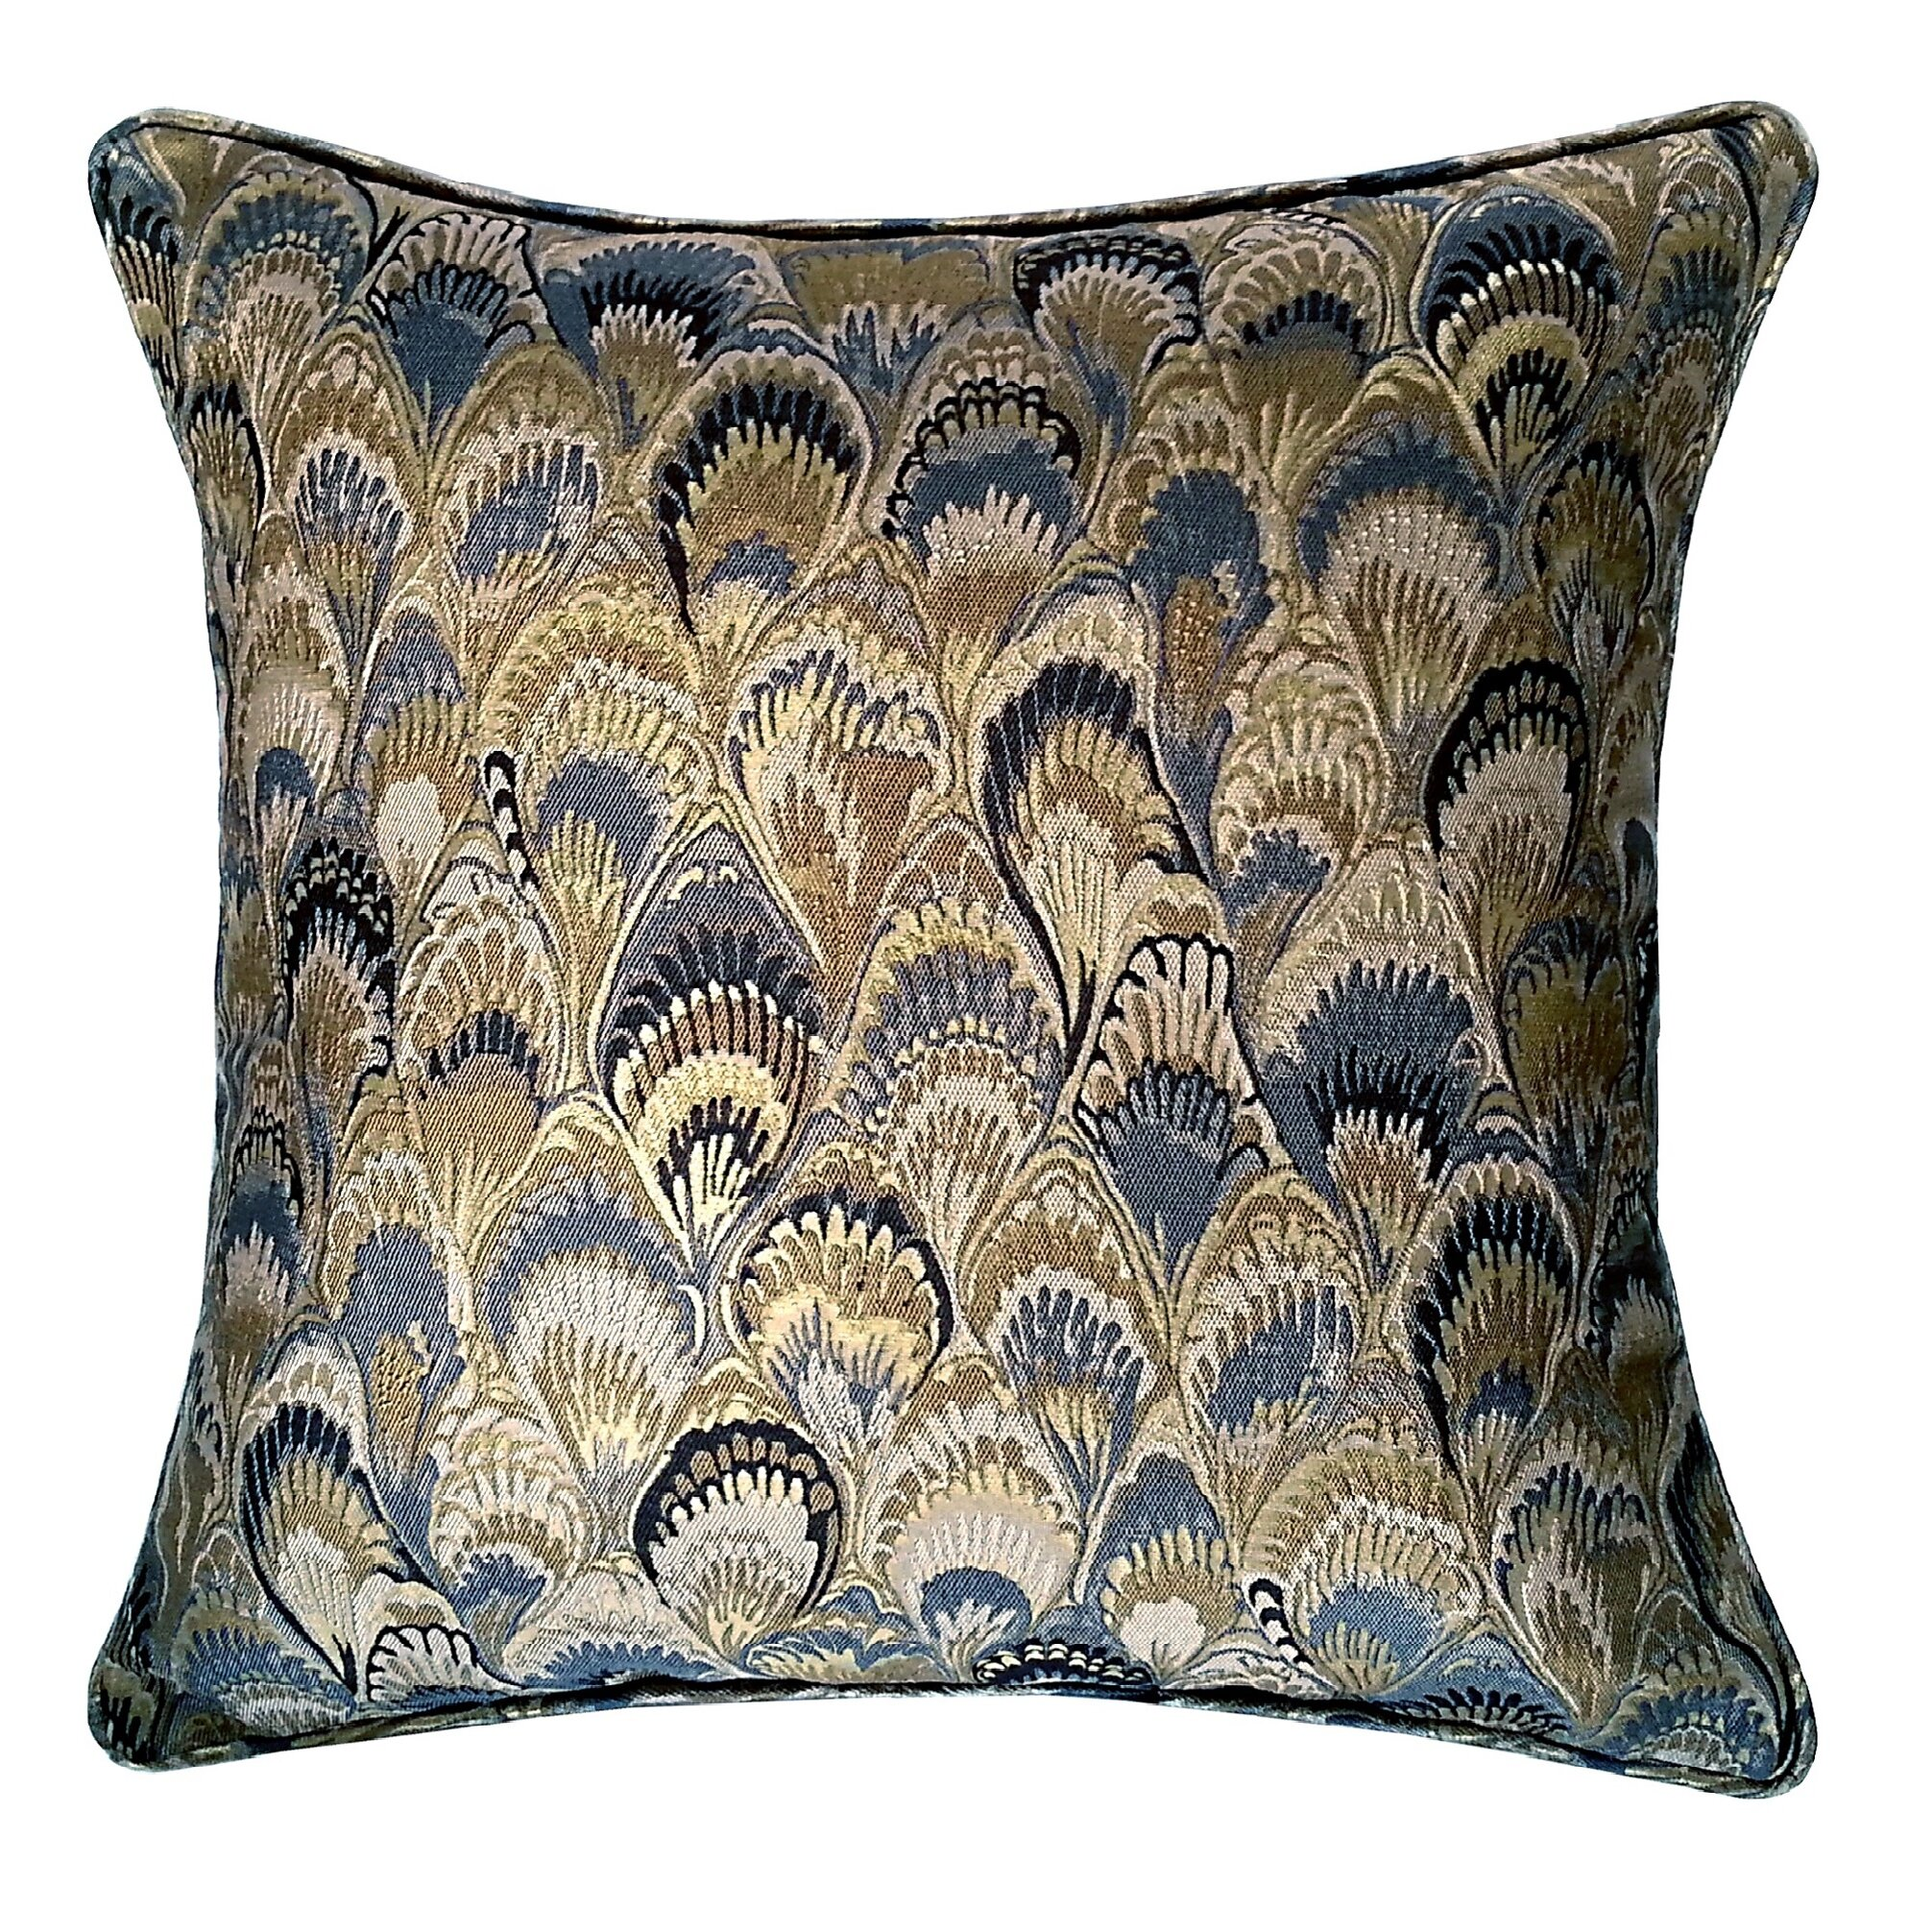 R&MIndustries Marbleize Jacquard Throw Pillow Wayfair